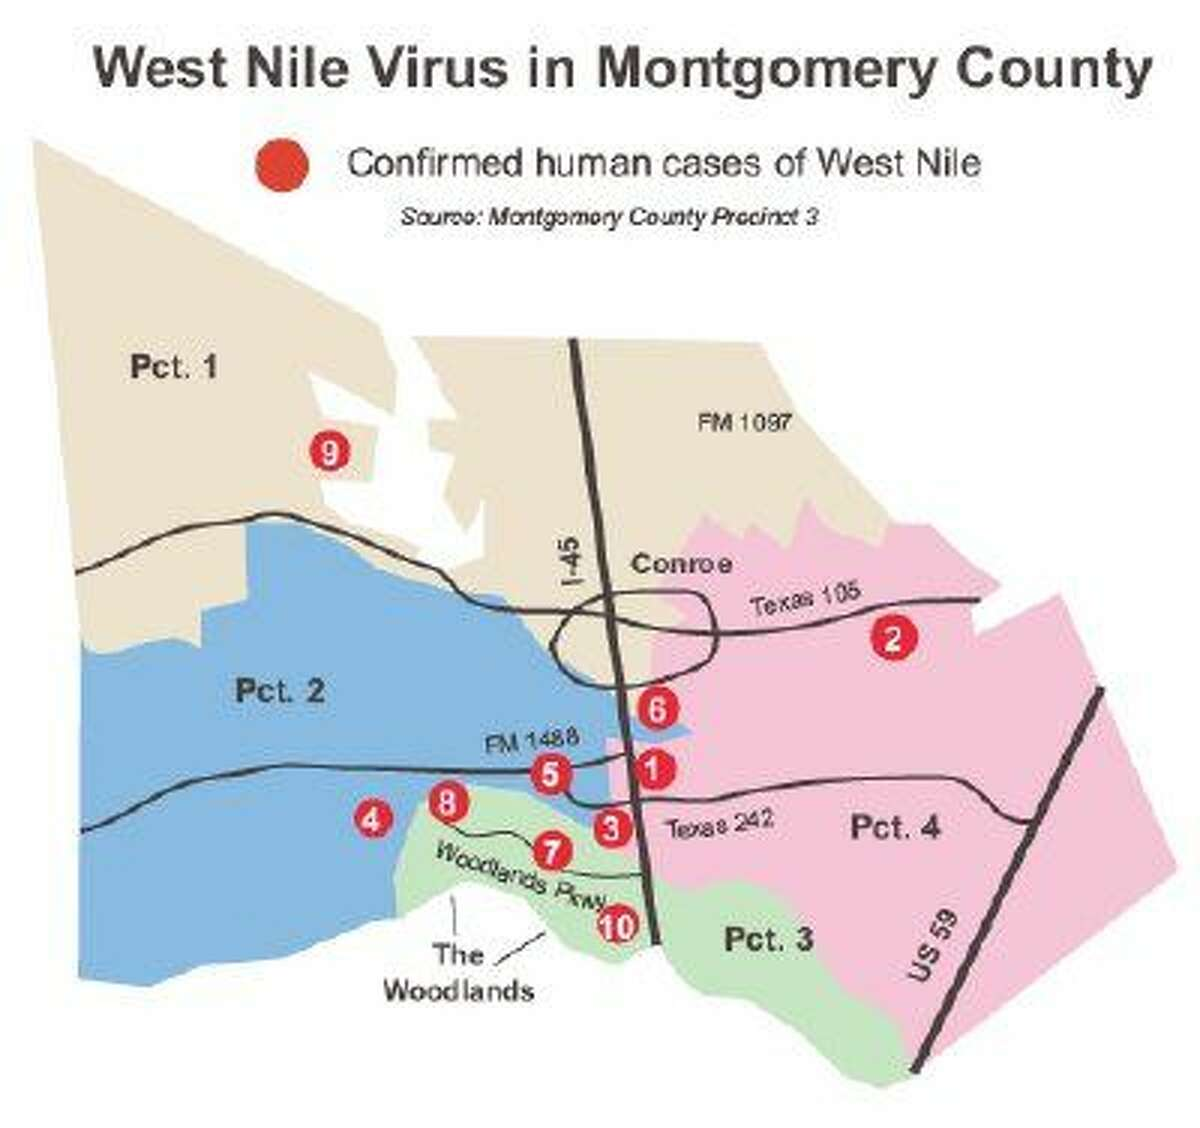 10th case of human West Nile virus confirmed in the county